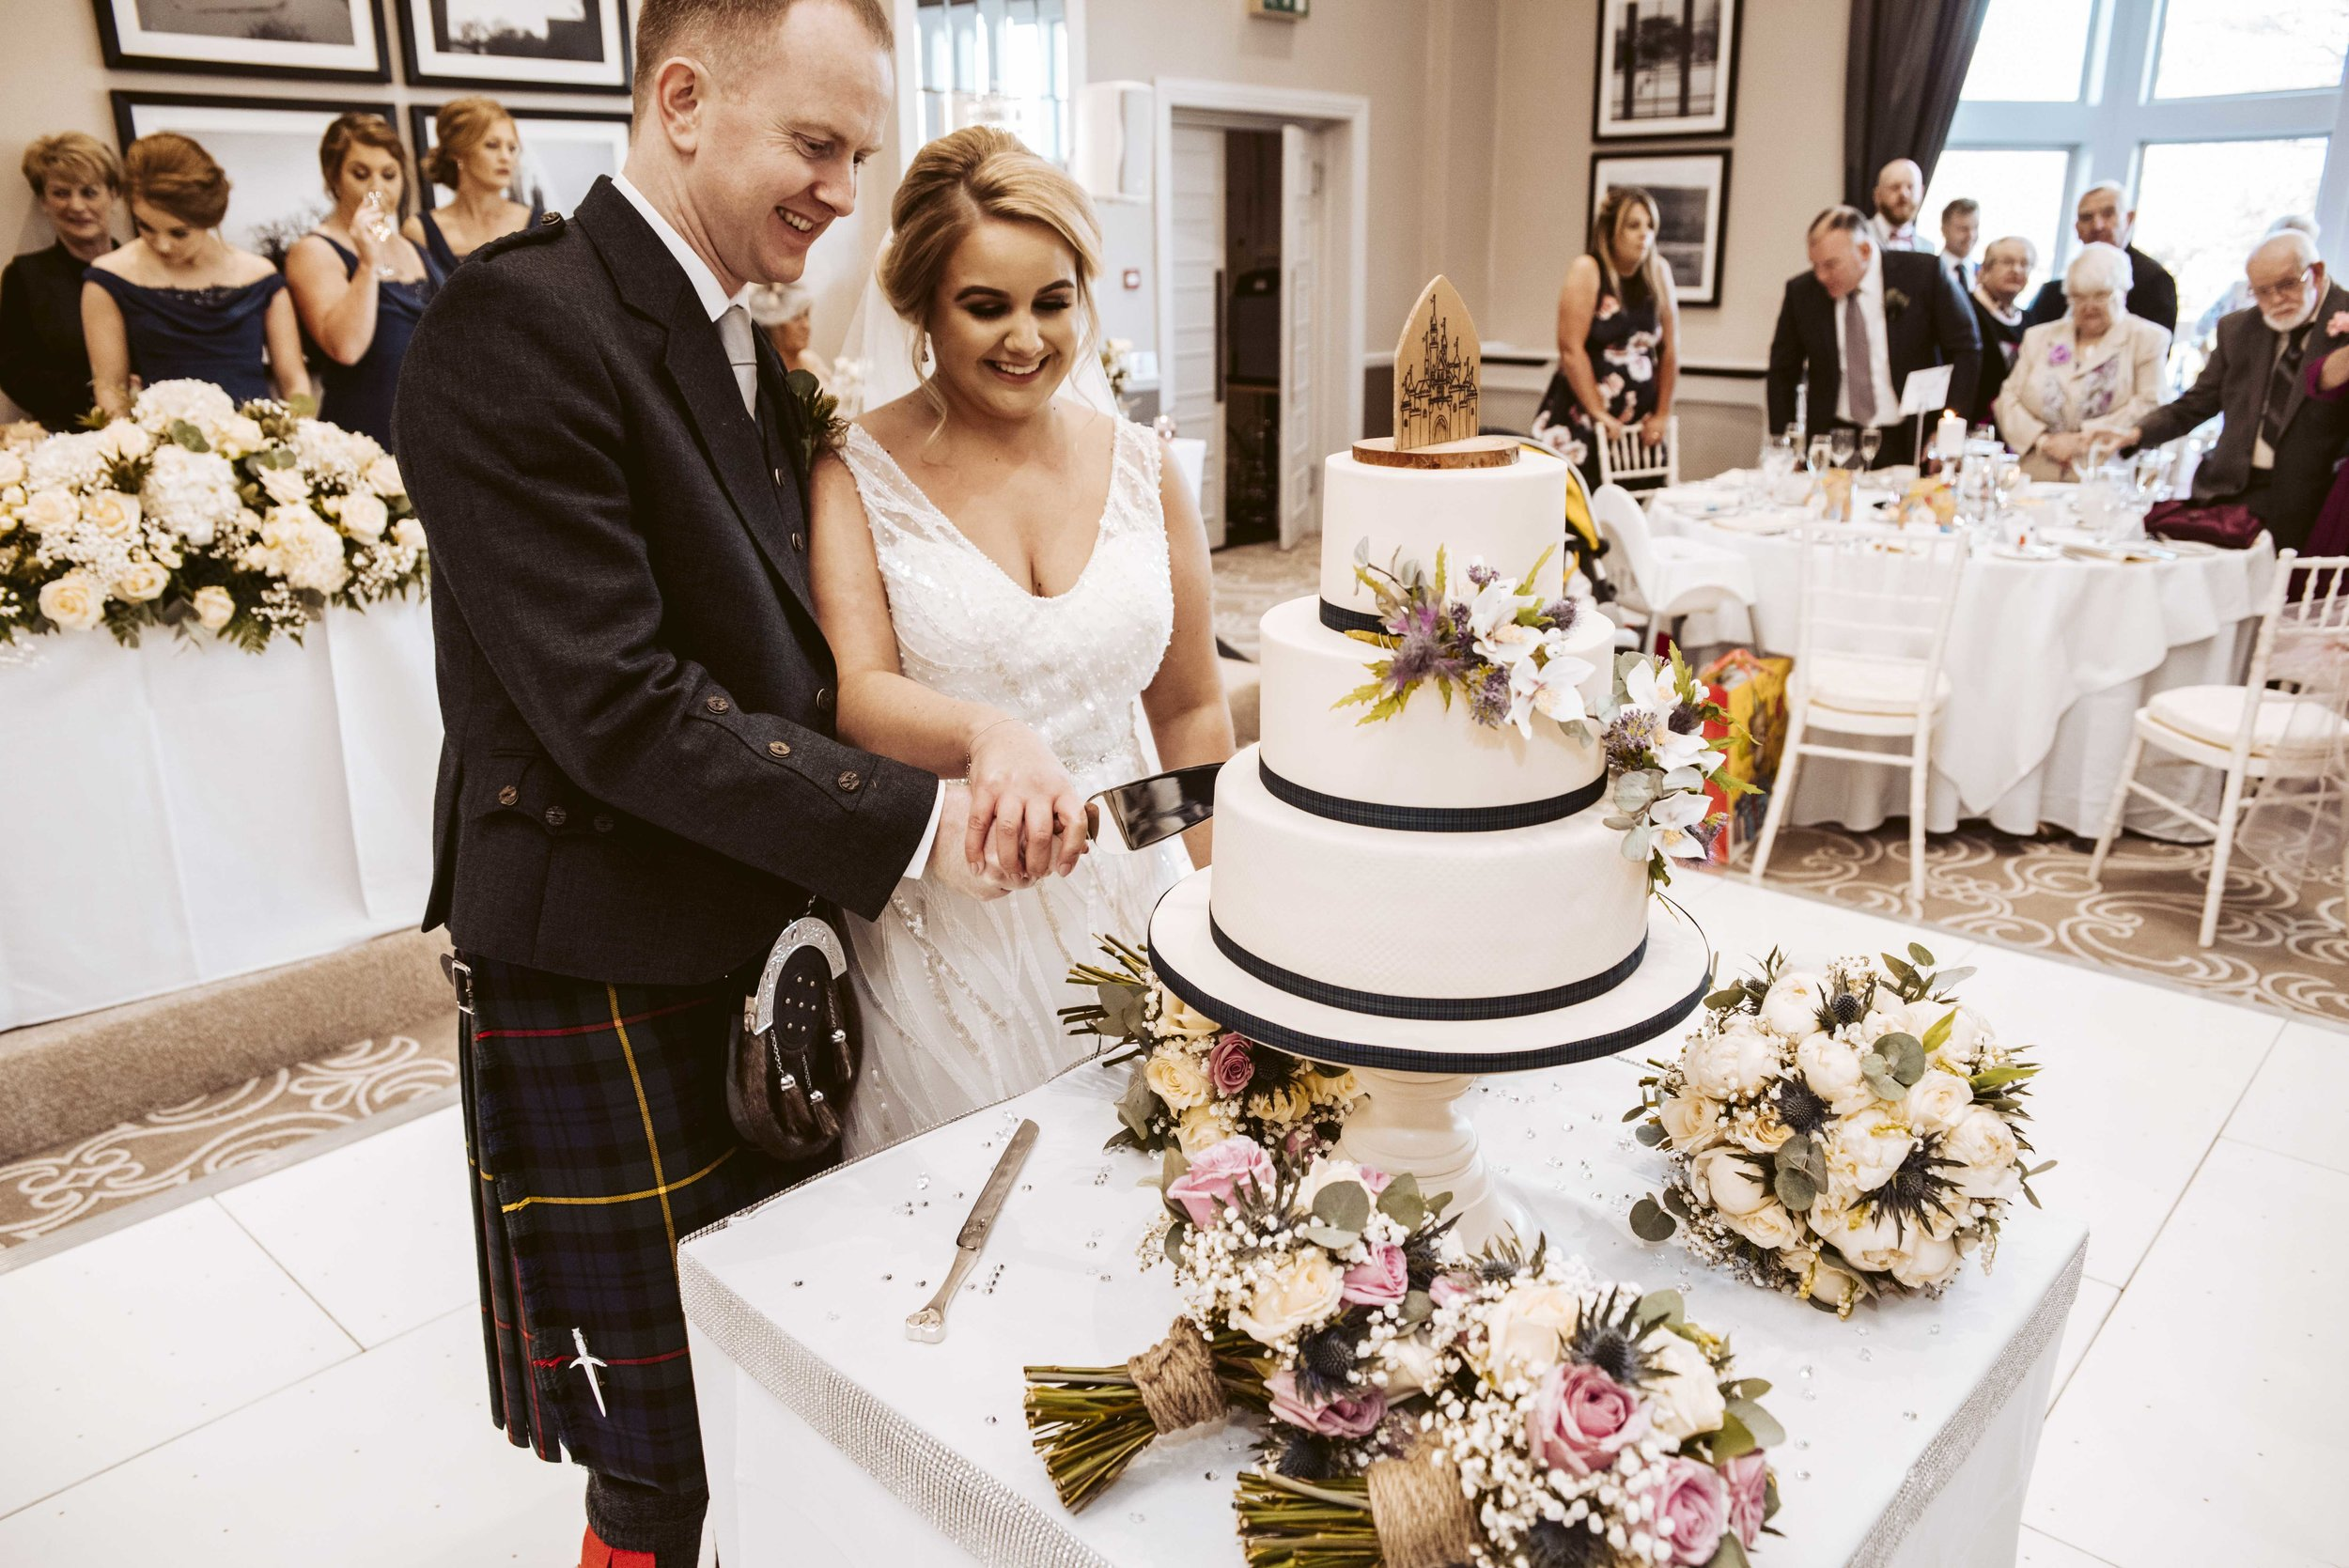 Mar Hall Wedding 2018, Haminsh & Emma McEwan 53.JPG